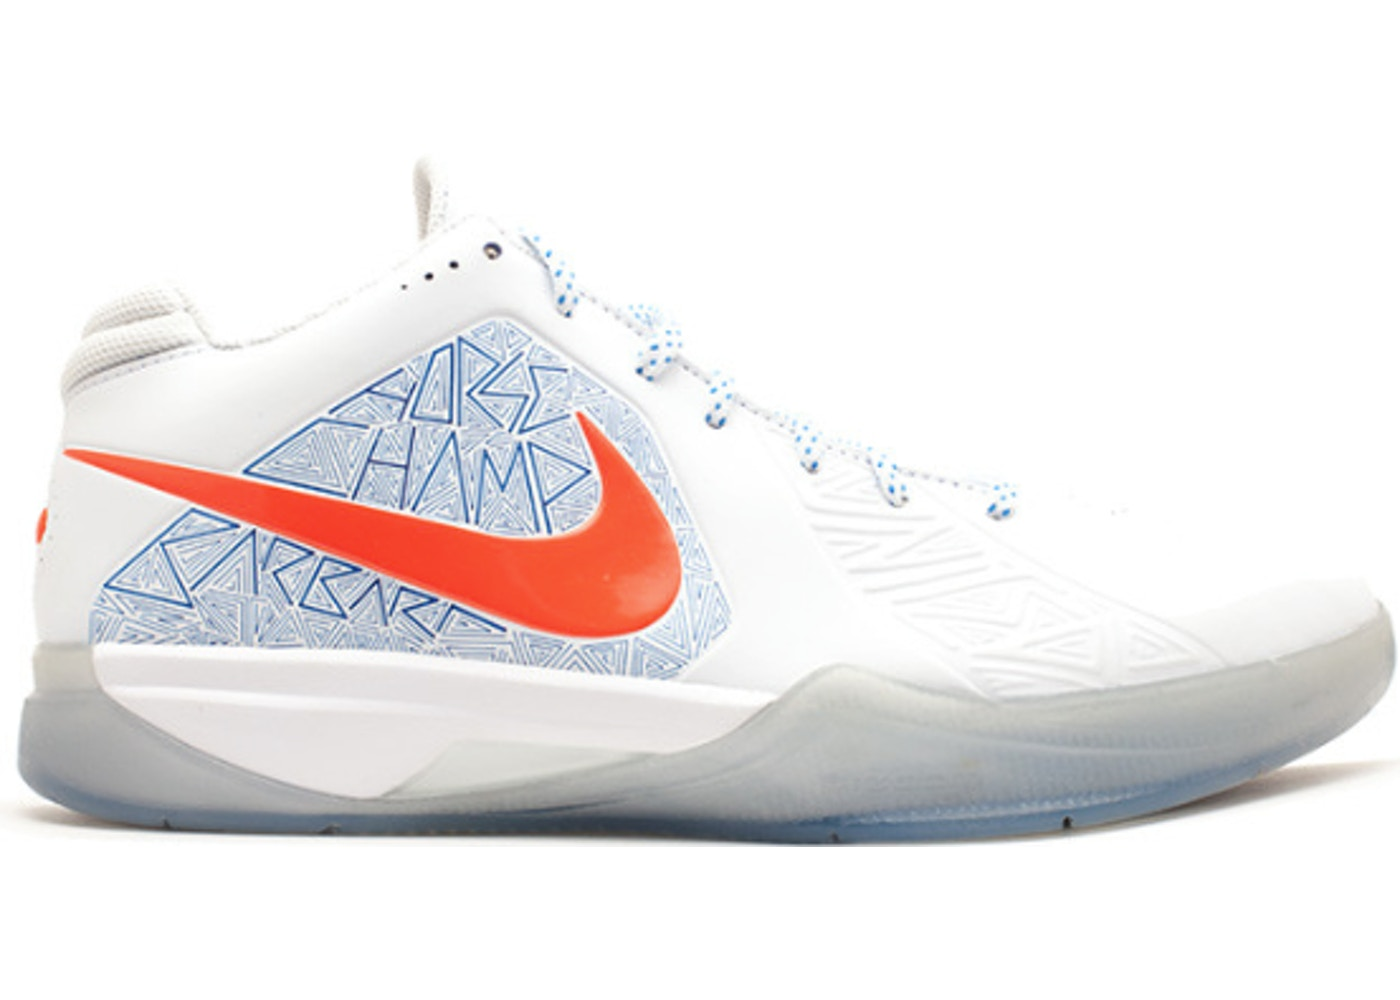 ナイキ NIKE スニーカー 【 KD 3 LS SCORING TITLE WHITE TEAM ORANGEPHOTO BLUE 】 メンズ